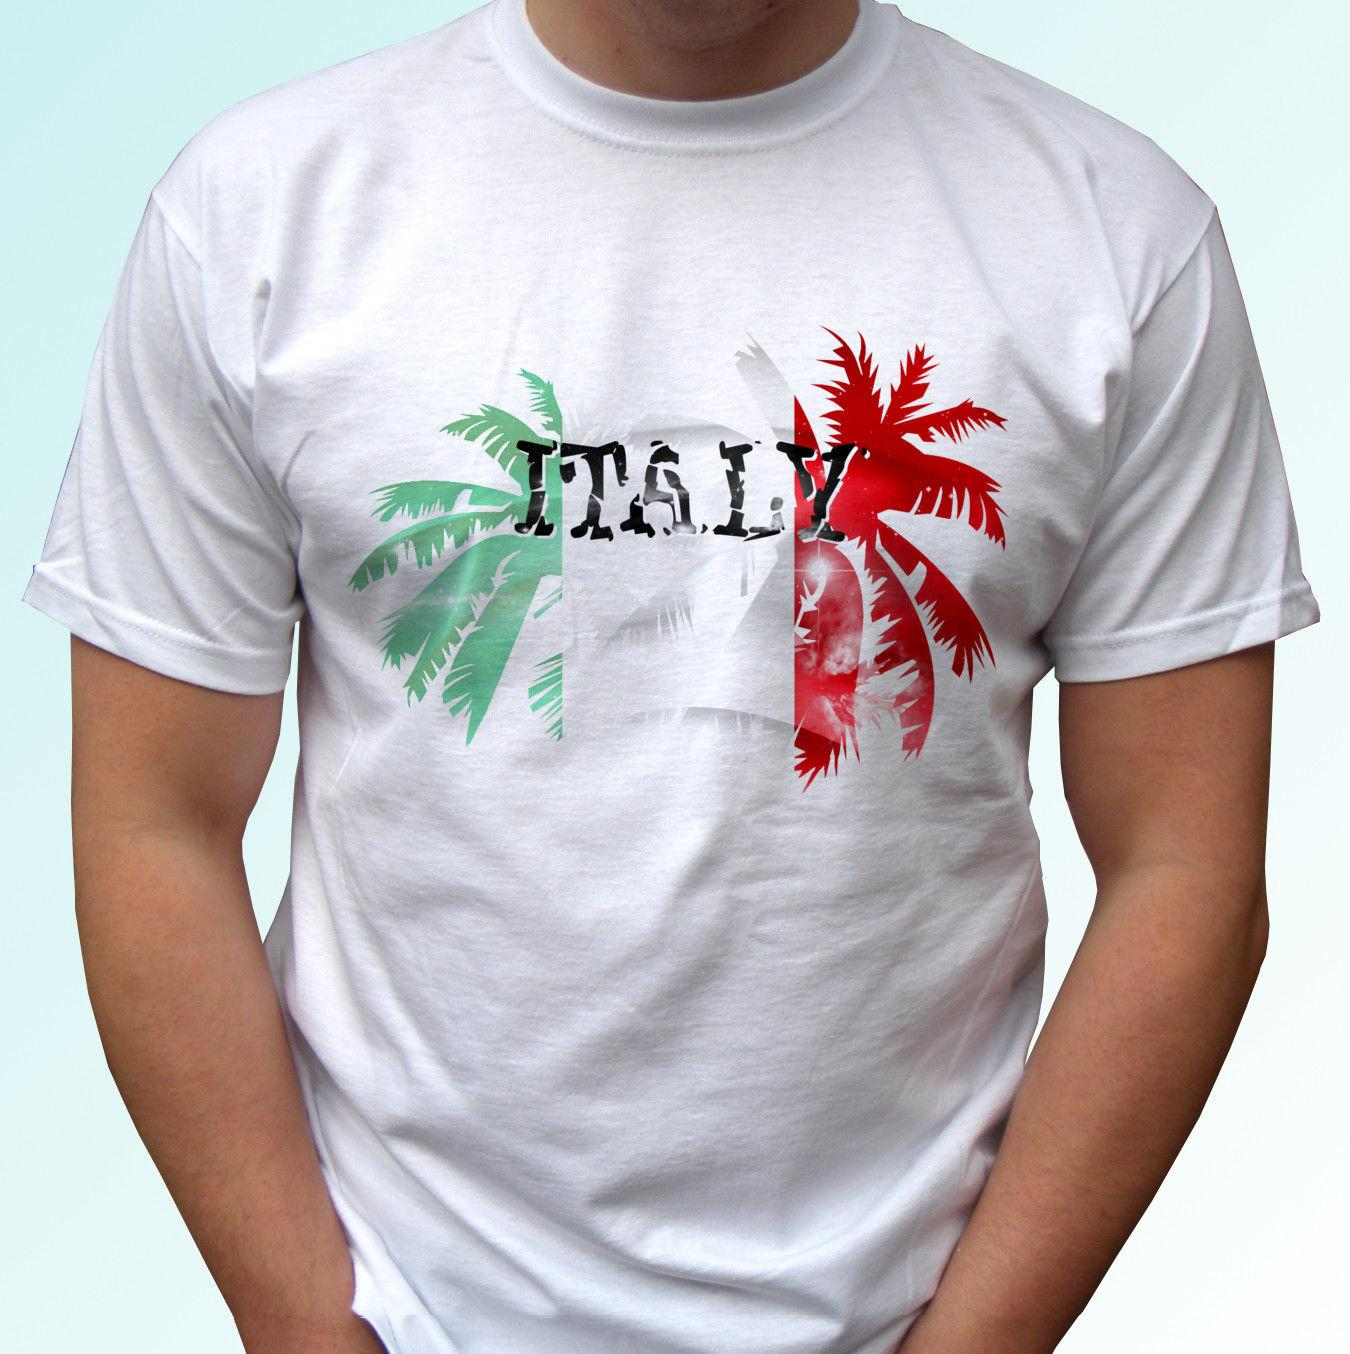 Italy Palm flag - white t shirt holiday top design mens womens kids baby sizes funny gift Short Tops Round Neck Tees short Sleeve T-Shirt